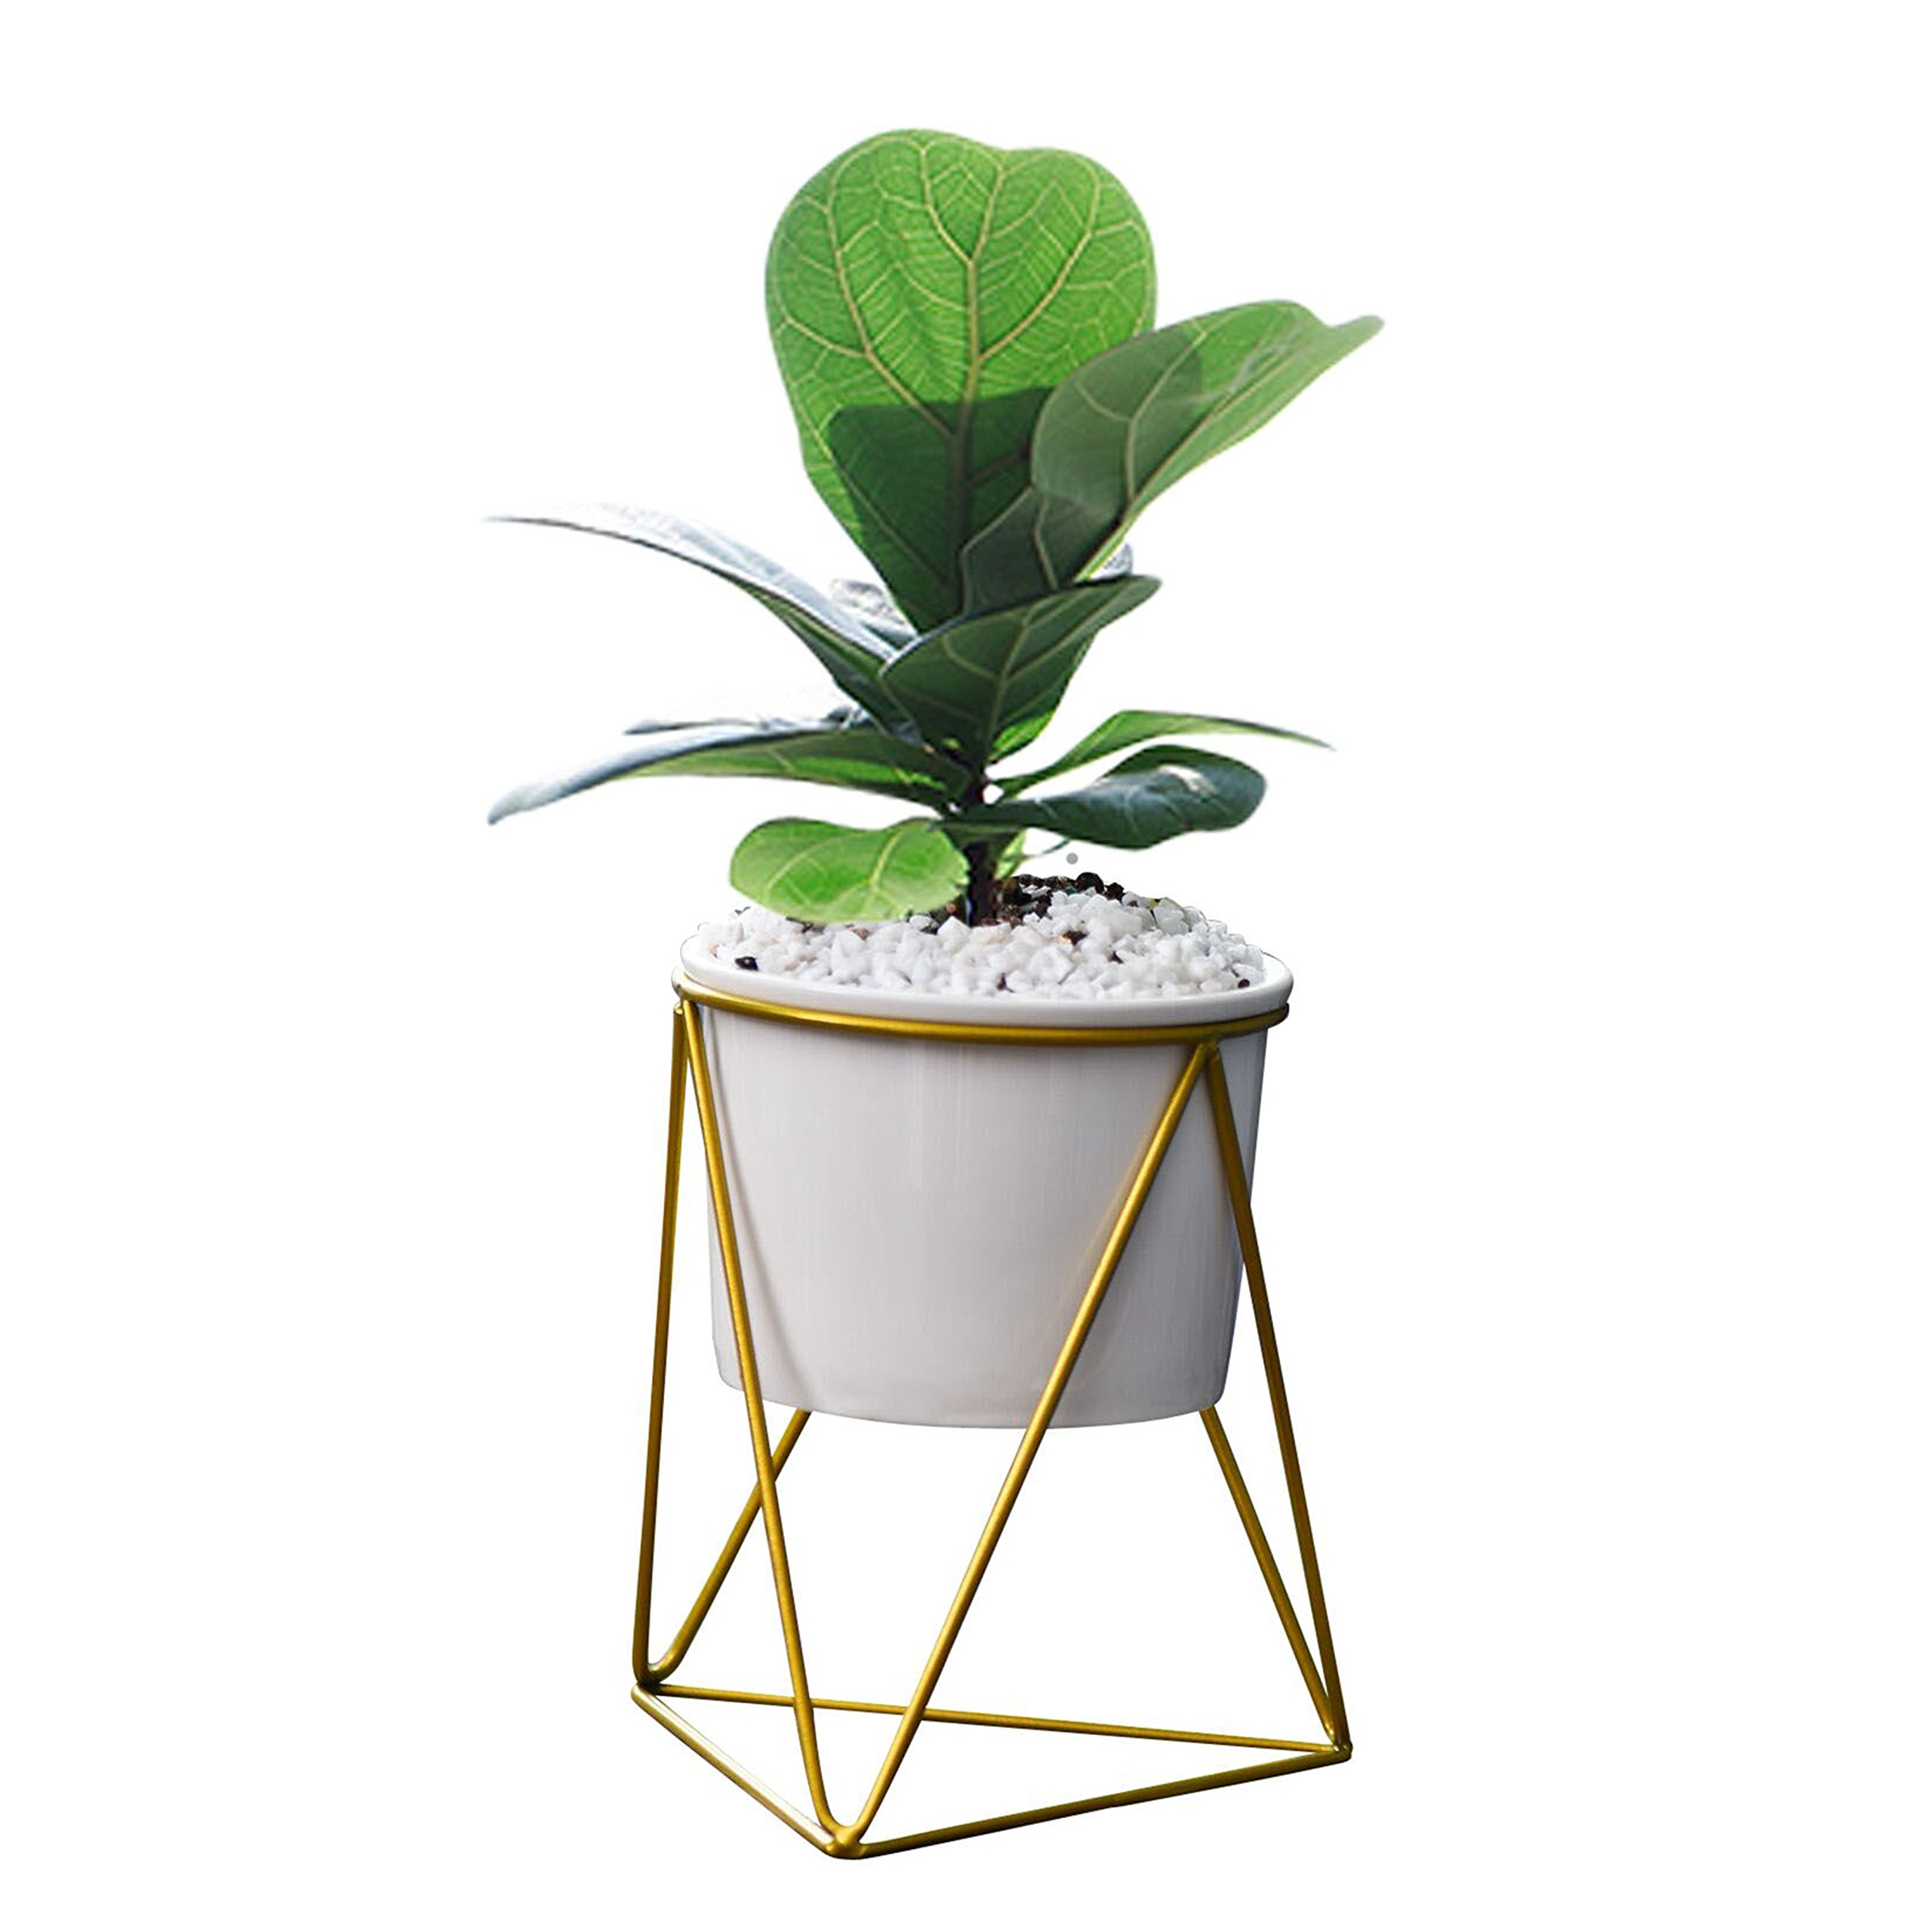 Feiren Outdoor/Indoor Planter Pots/Succulent pots/Stand for 6'' Pot House Plant White Ceramic Round Bowl with Metal Air Plant Stand for Succulent Planter -Perfect for Fig Tree Ficus(White + Gold)